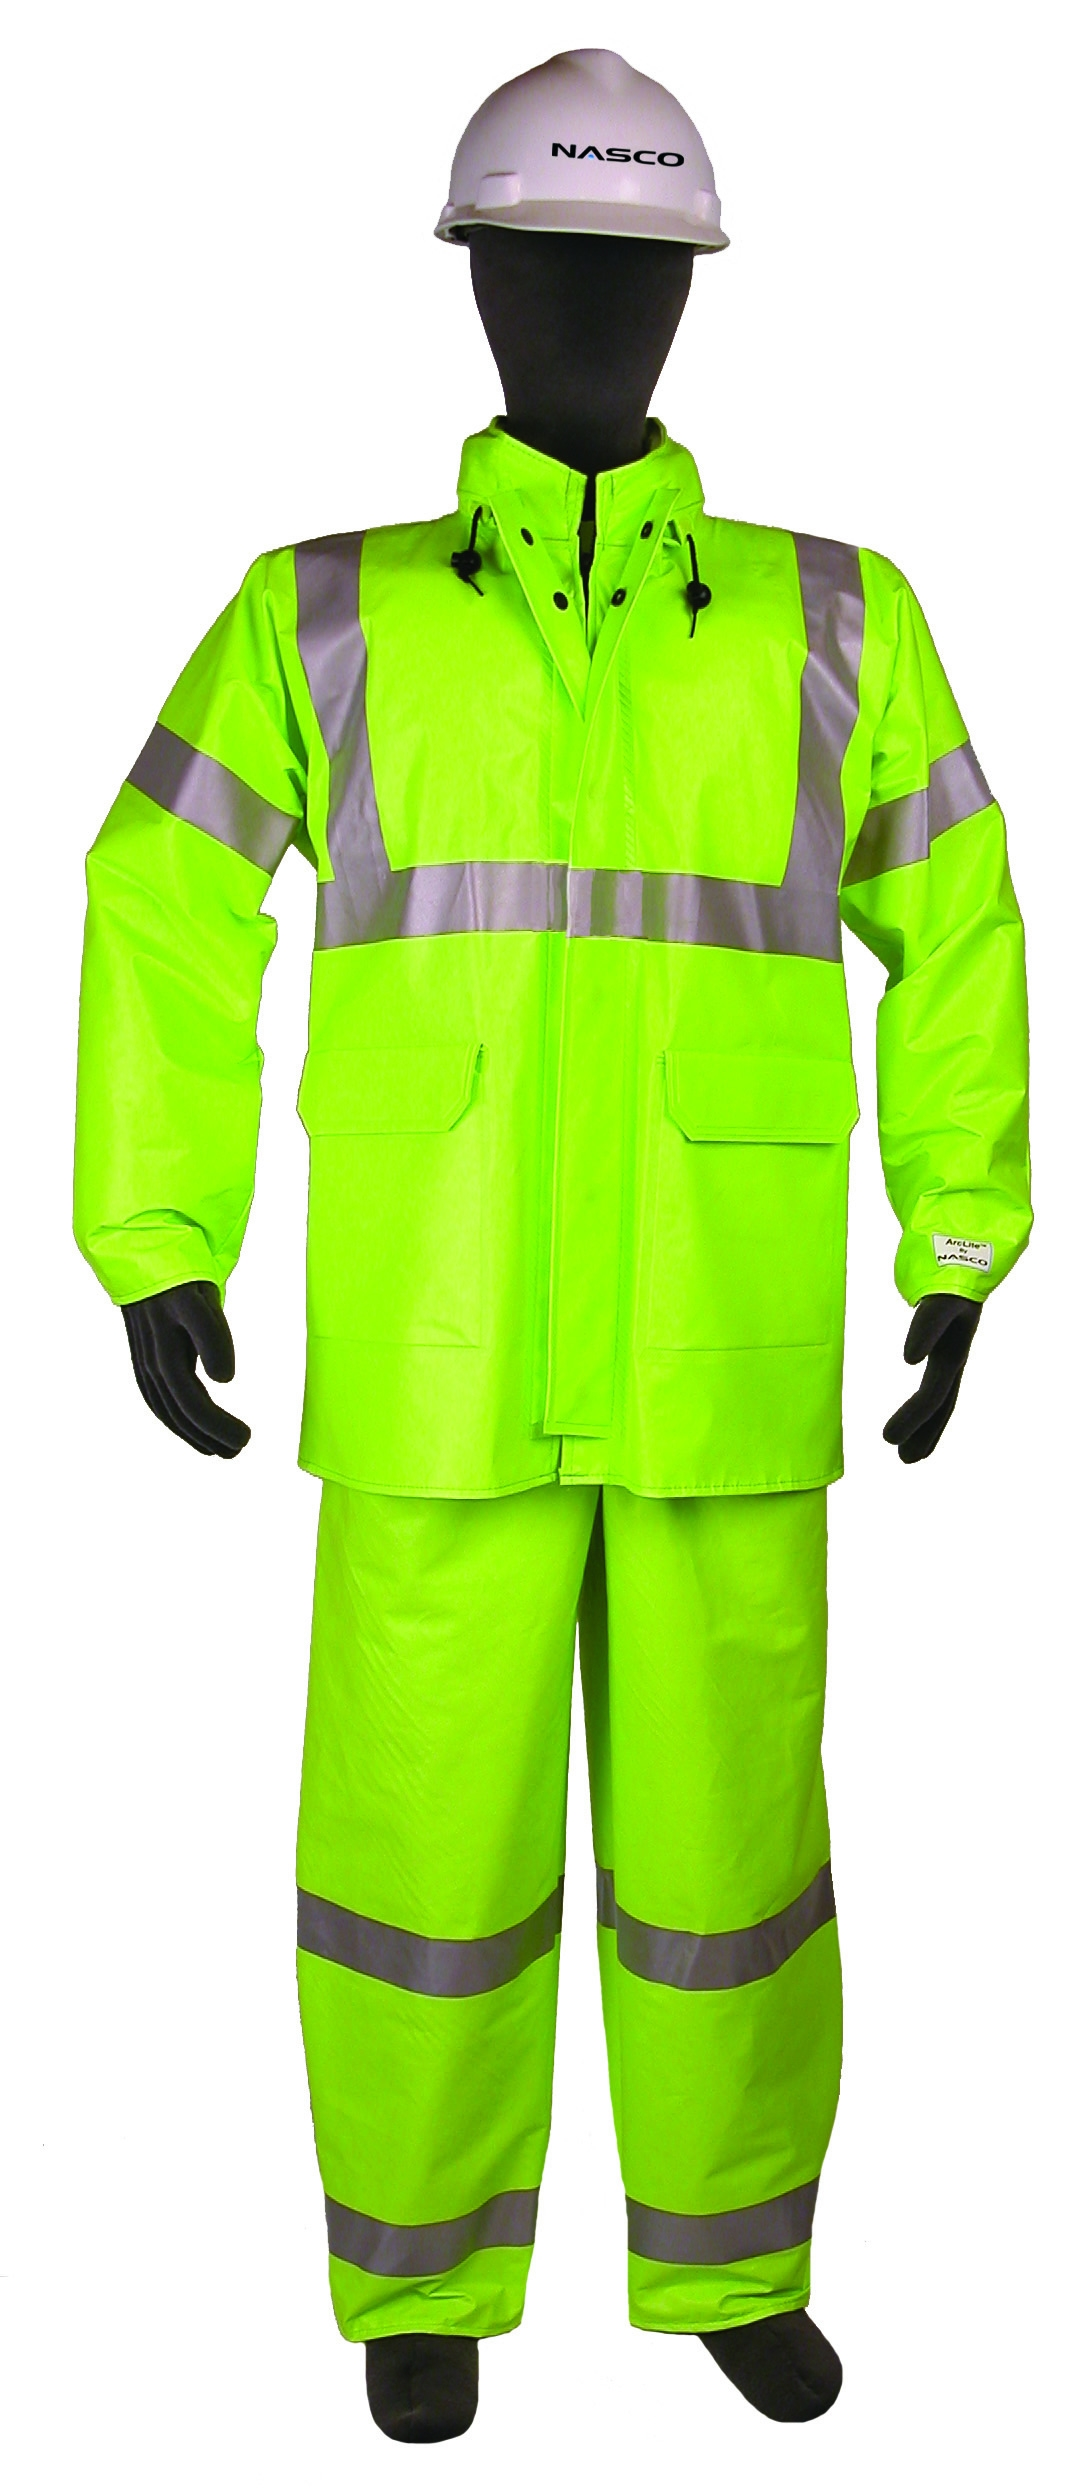 Arclite 1500 Series Full Suit Fluorescent Lime Yellow